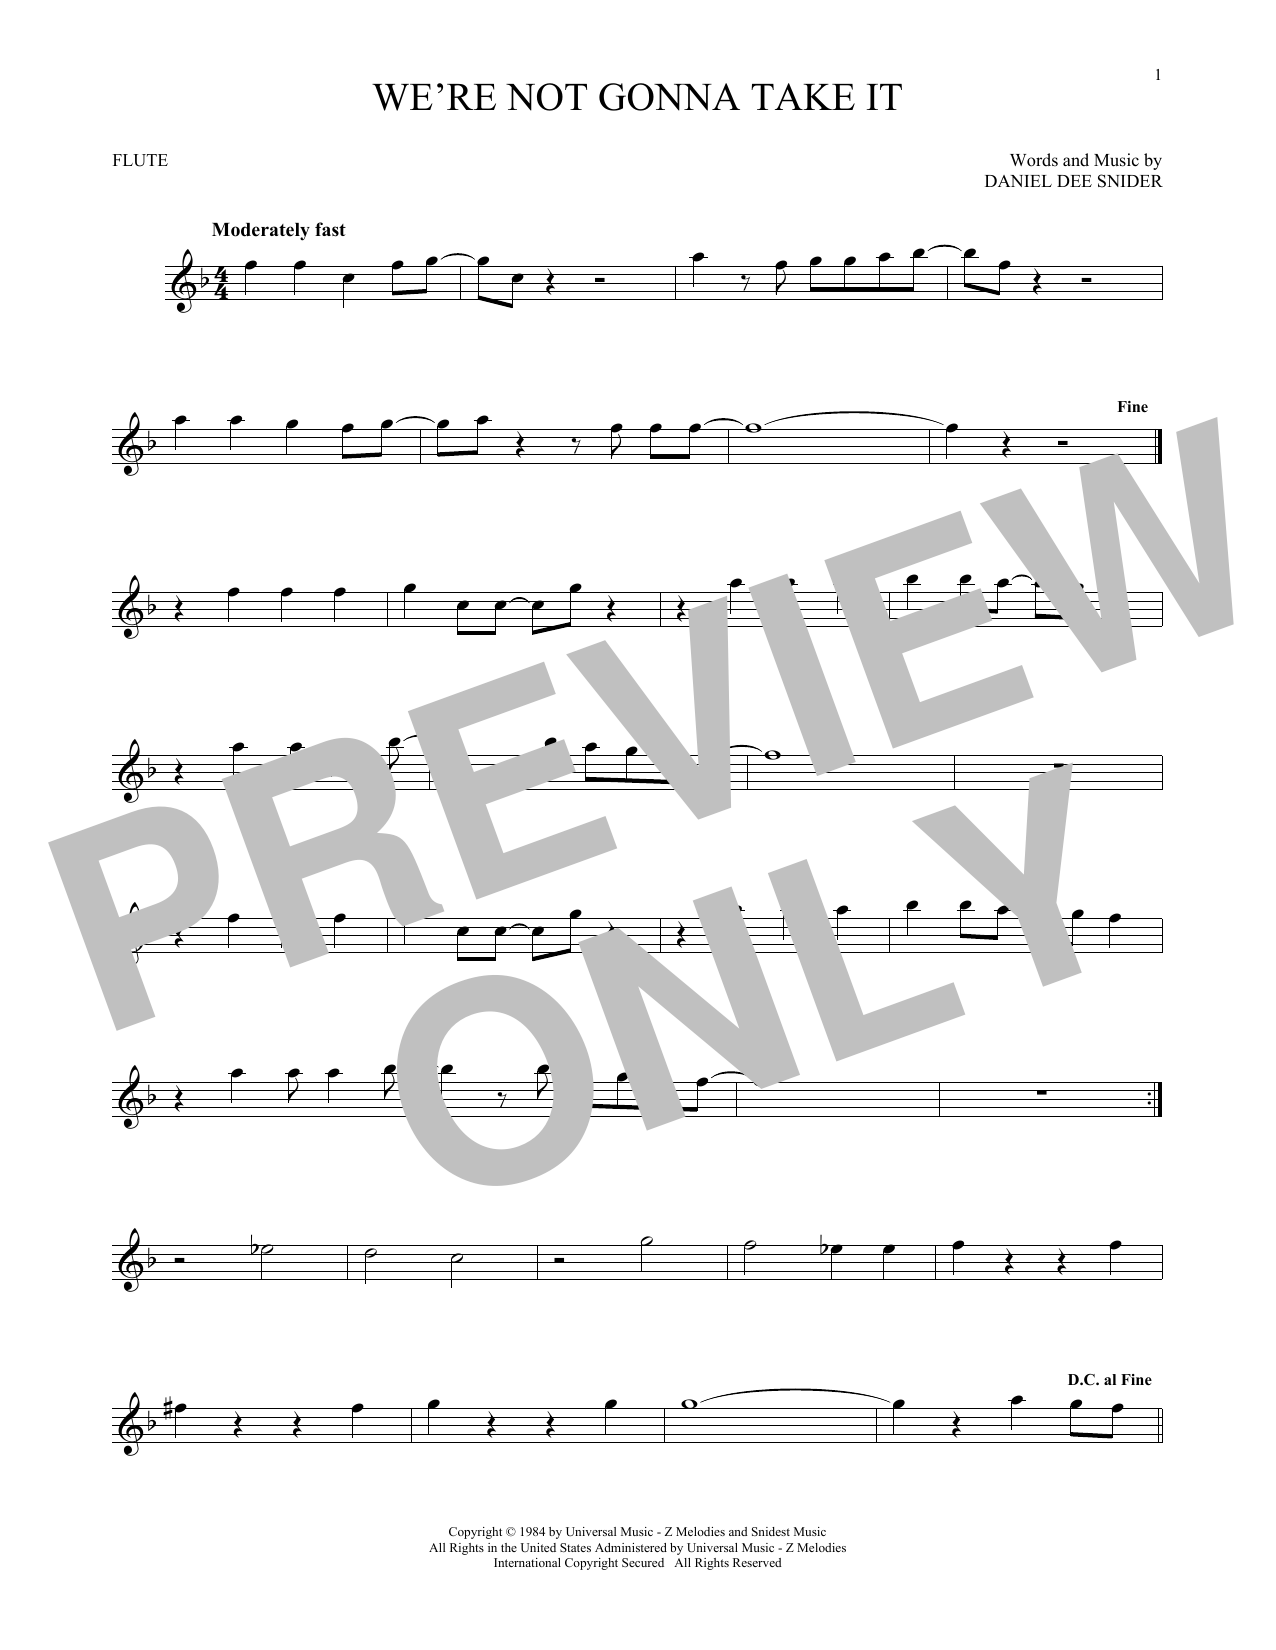 We're Not Gonna Take It (Flute Solo)